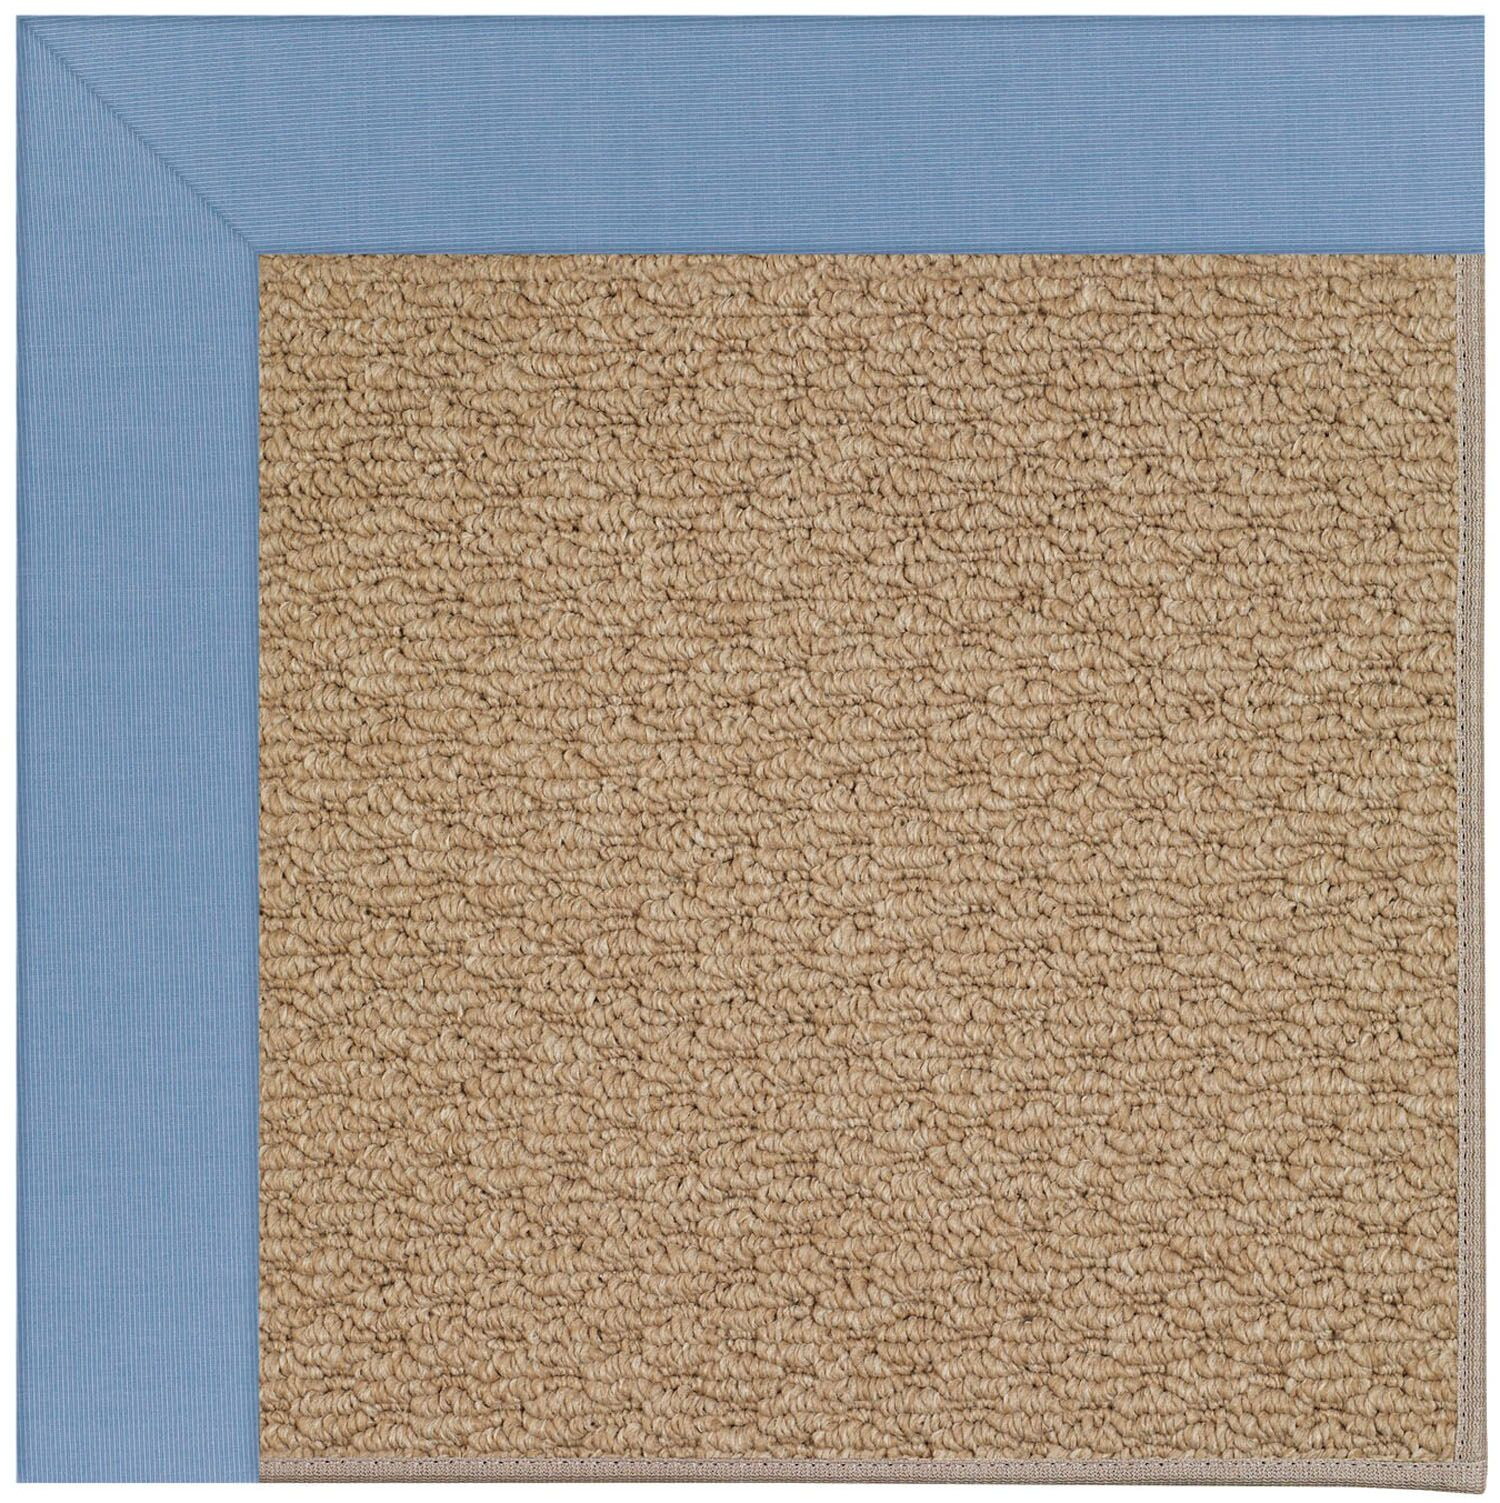 Lisle Machine Tufted Blue/Brown Indoor/Outdoor Area Rug Rug Size: Rectangle 4' x 6'